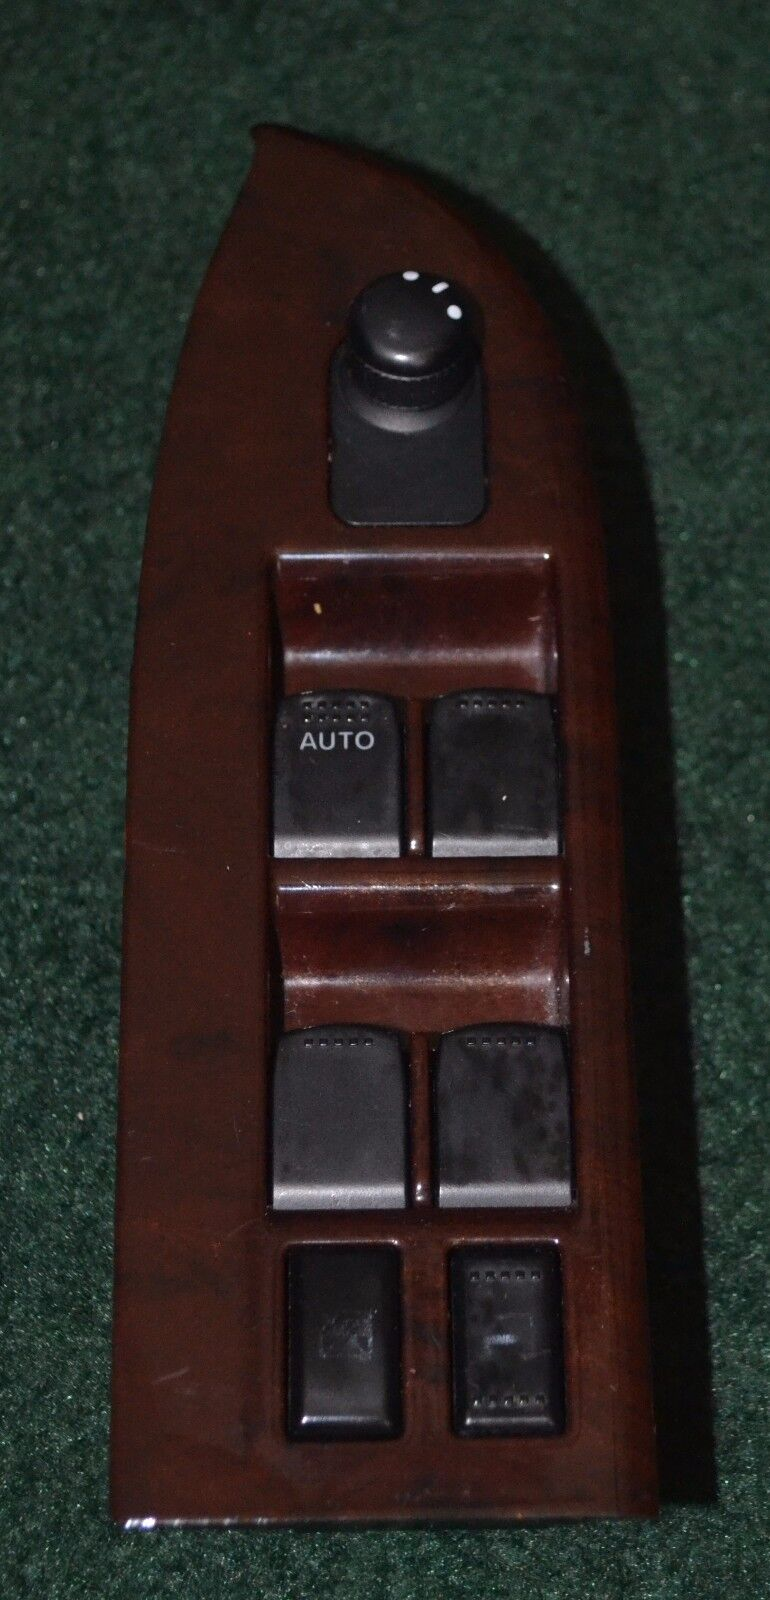 Used Suzuki Switches And Controls For Sale Page 5 2013 Grand Vitara Fuse Box 2006 Master Power Window Switch Bezel Wood Grain